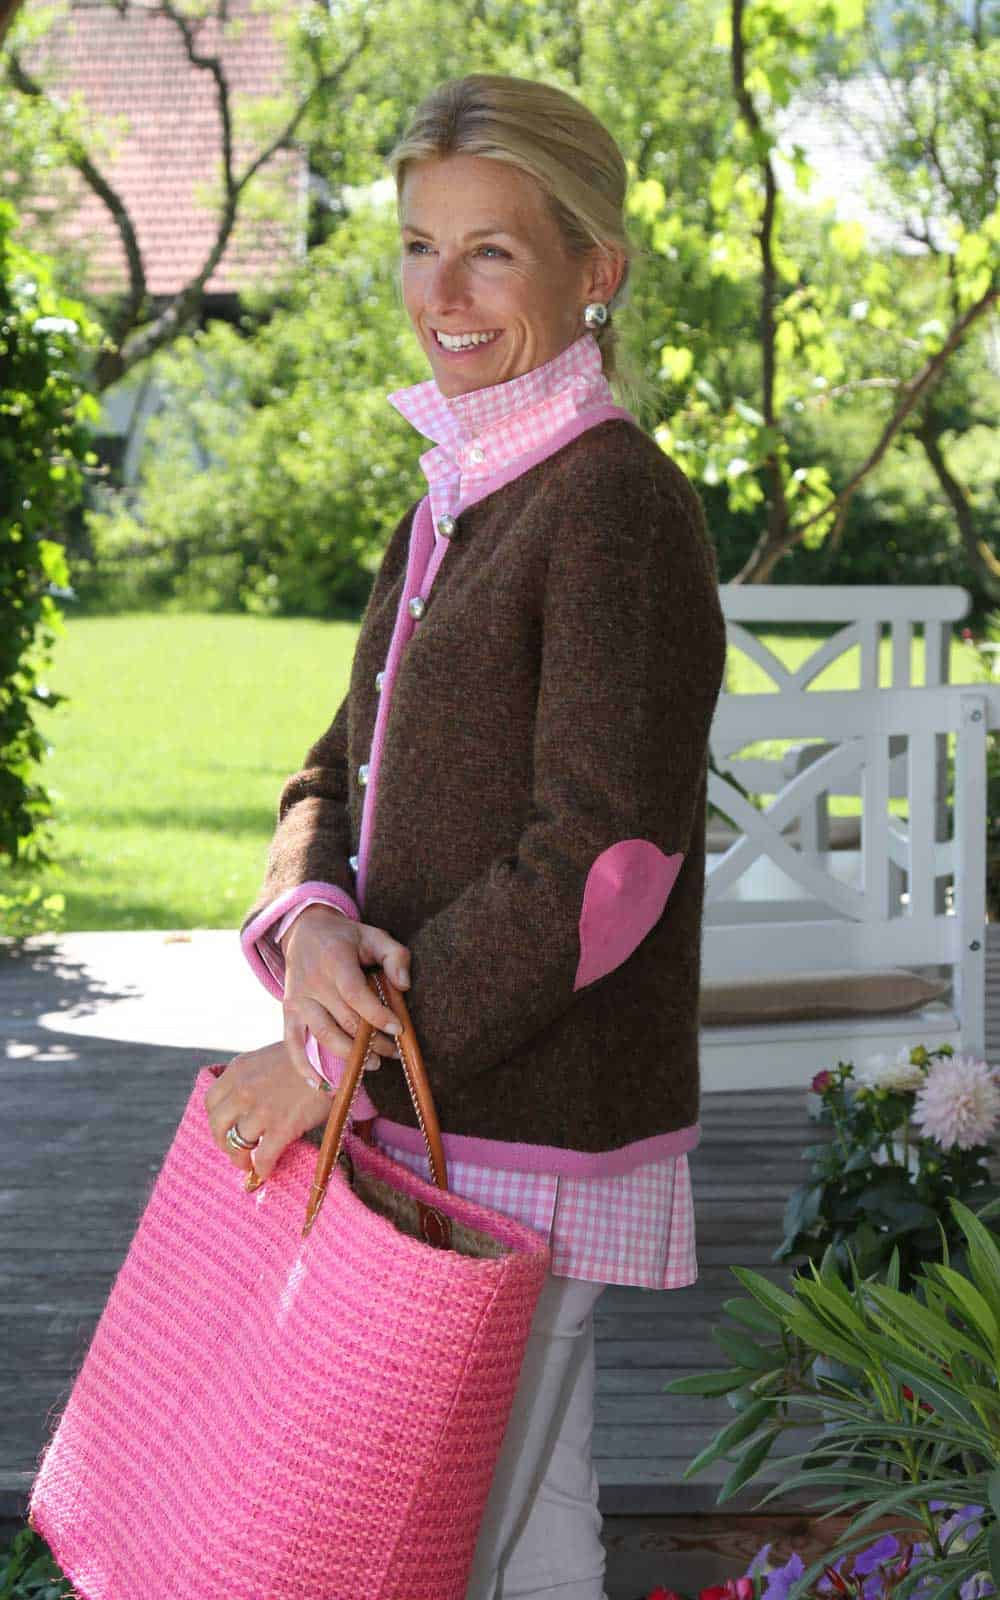 Jacke: L311 Farbe: 3178/244 [AS] (rosa Herz)